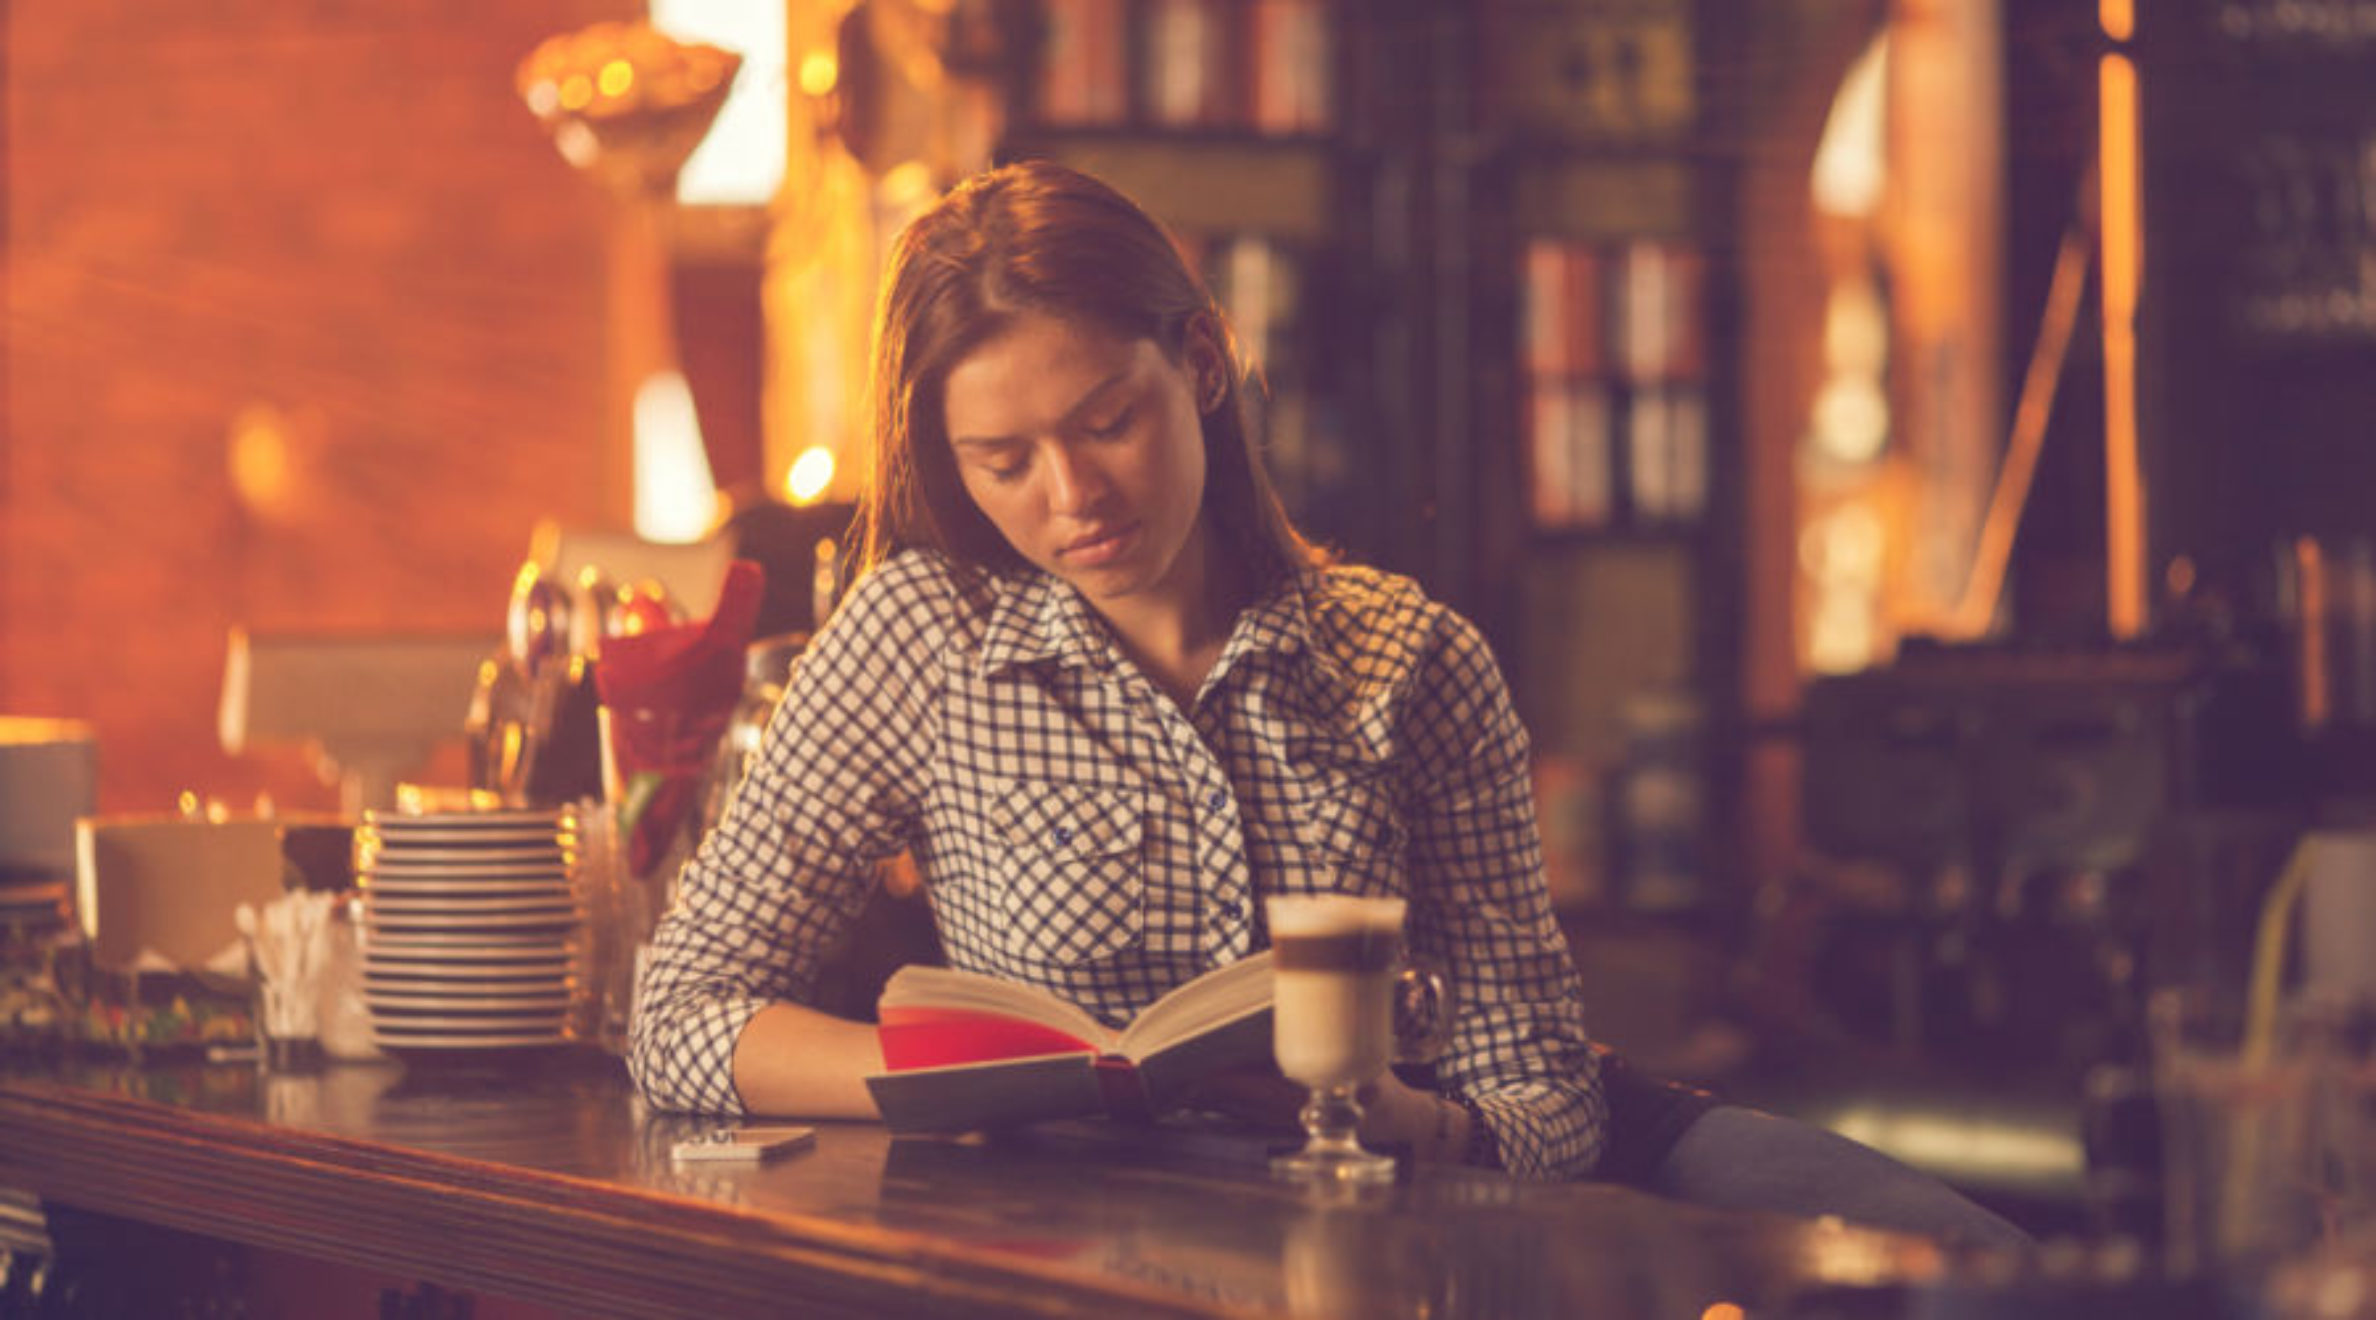 The Guide to Going Out for Introverts: Reading at the Bar